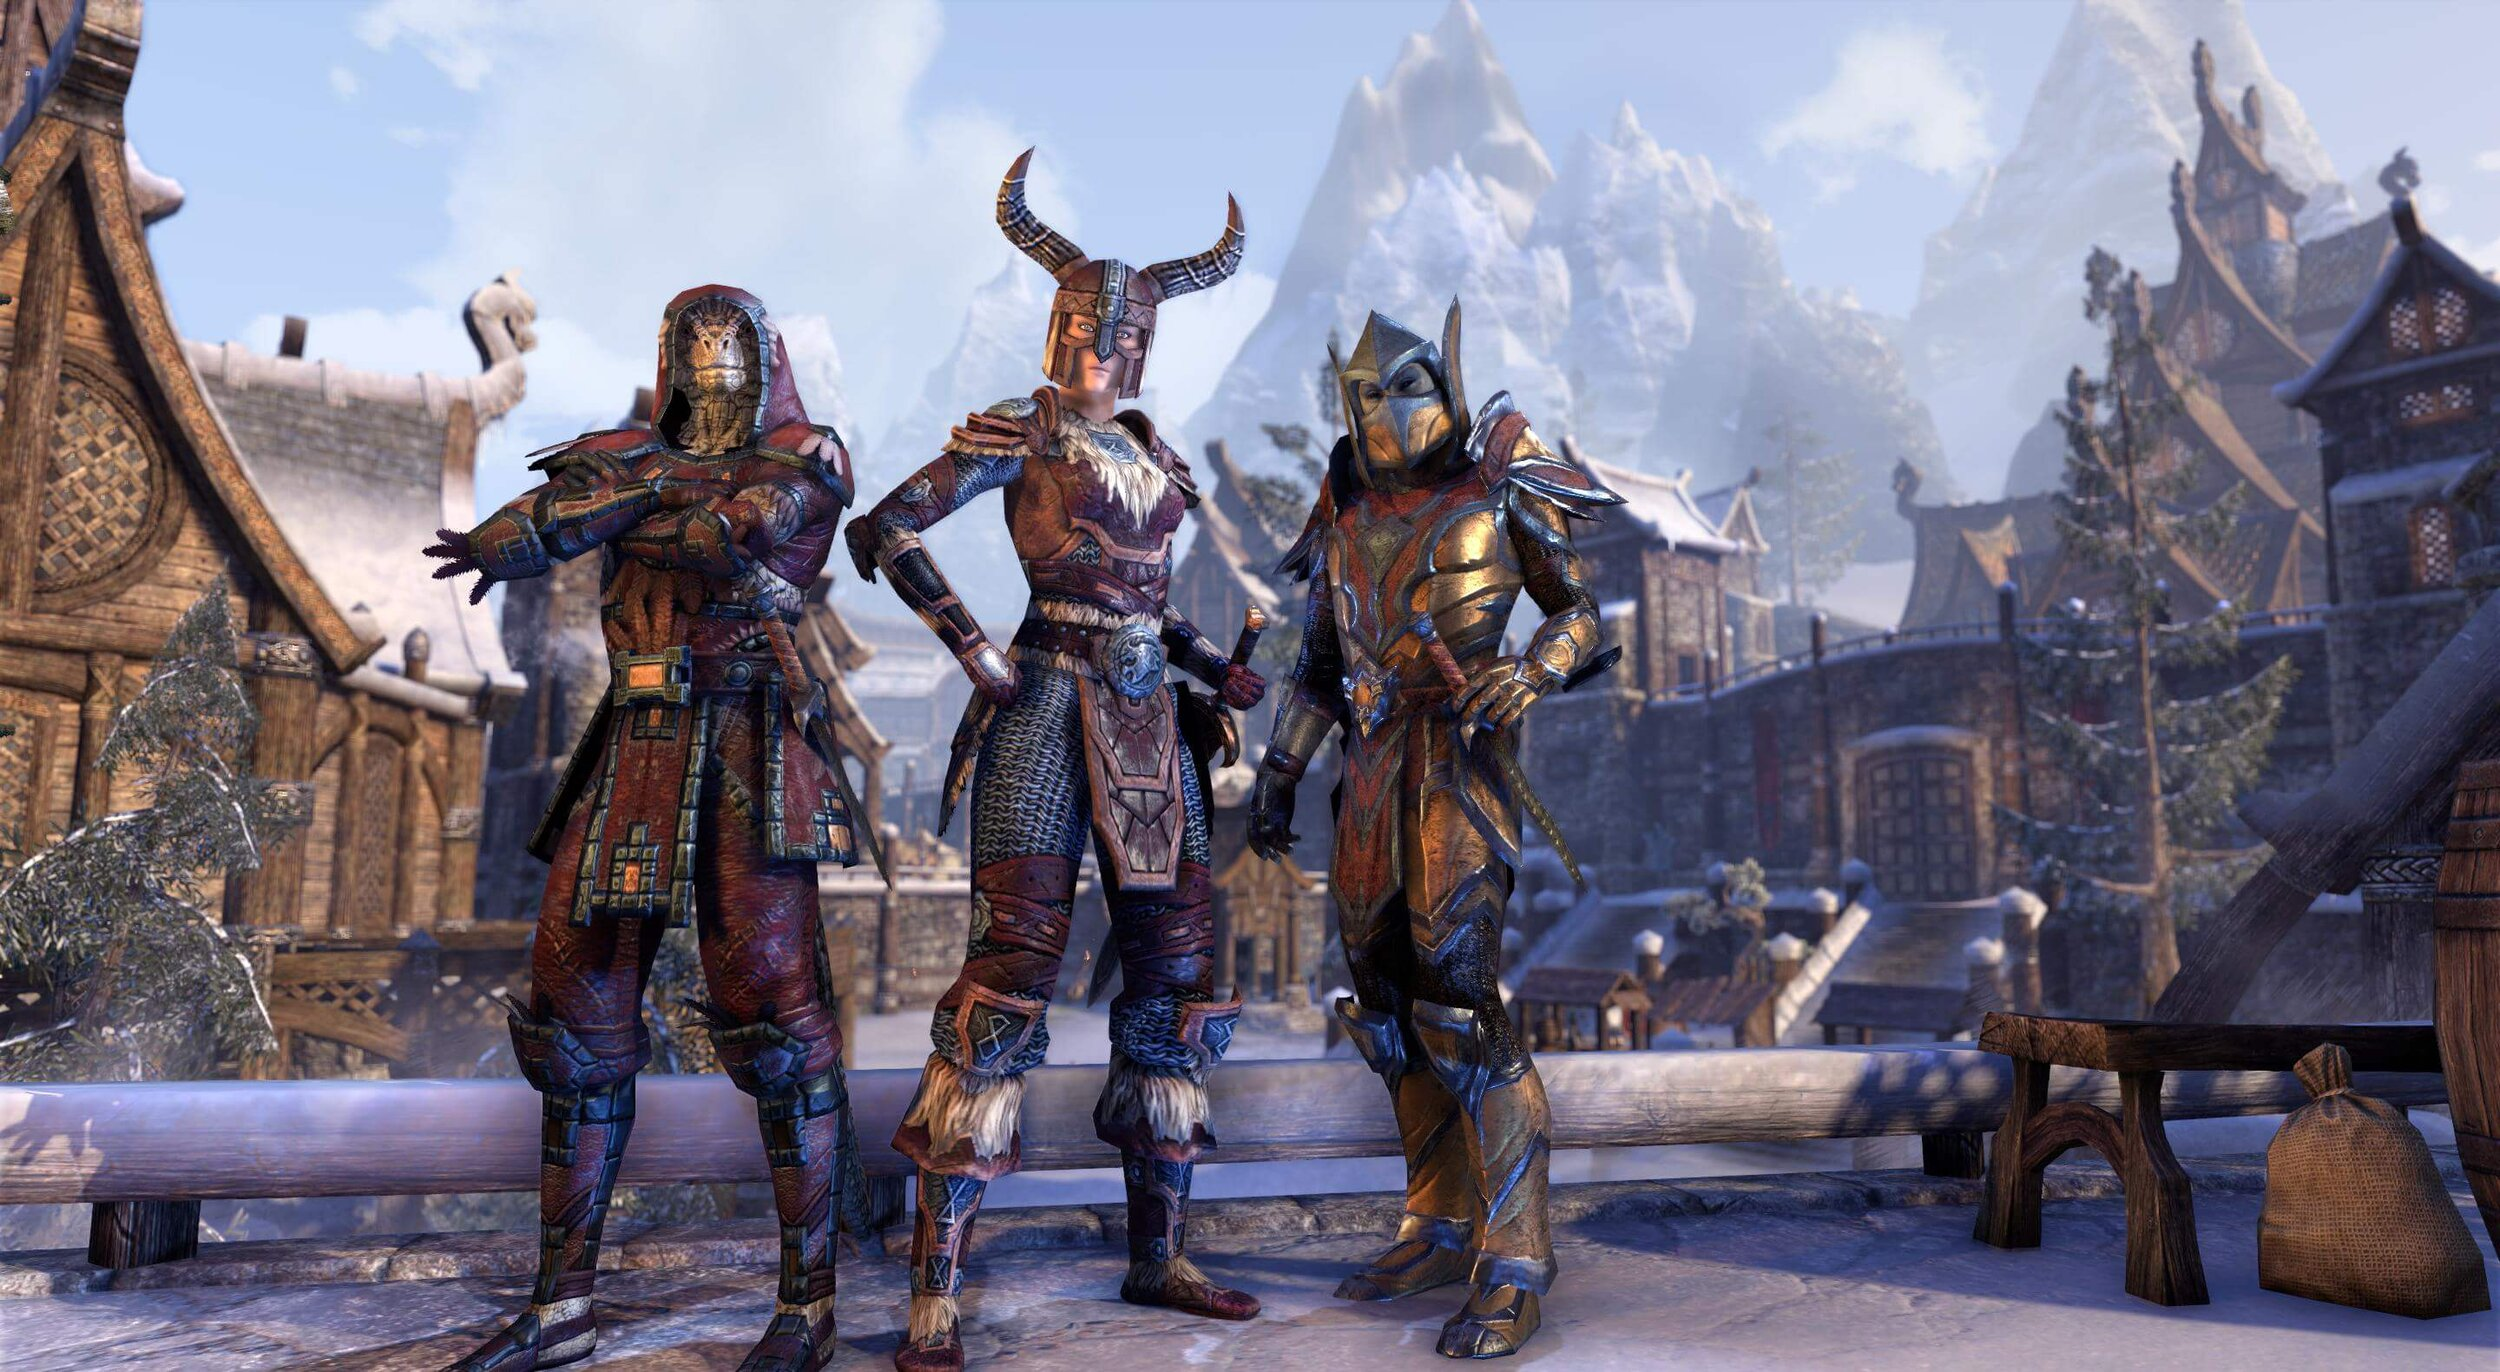 The races of the Ebonheart Pact include Nord, Argonian and Dark Elf.